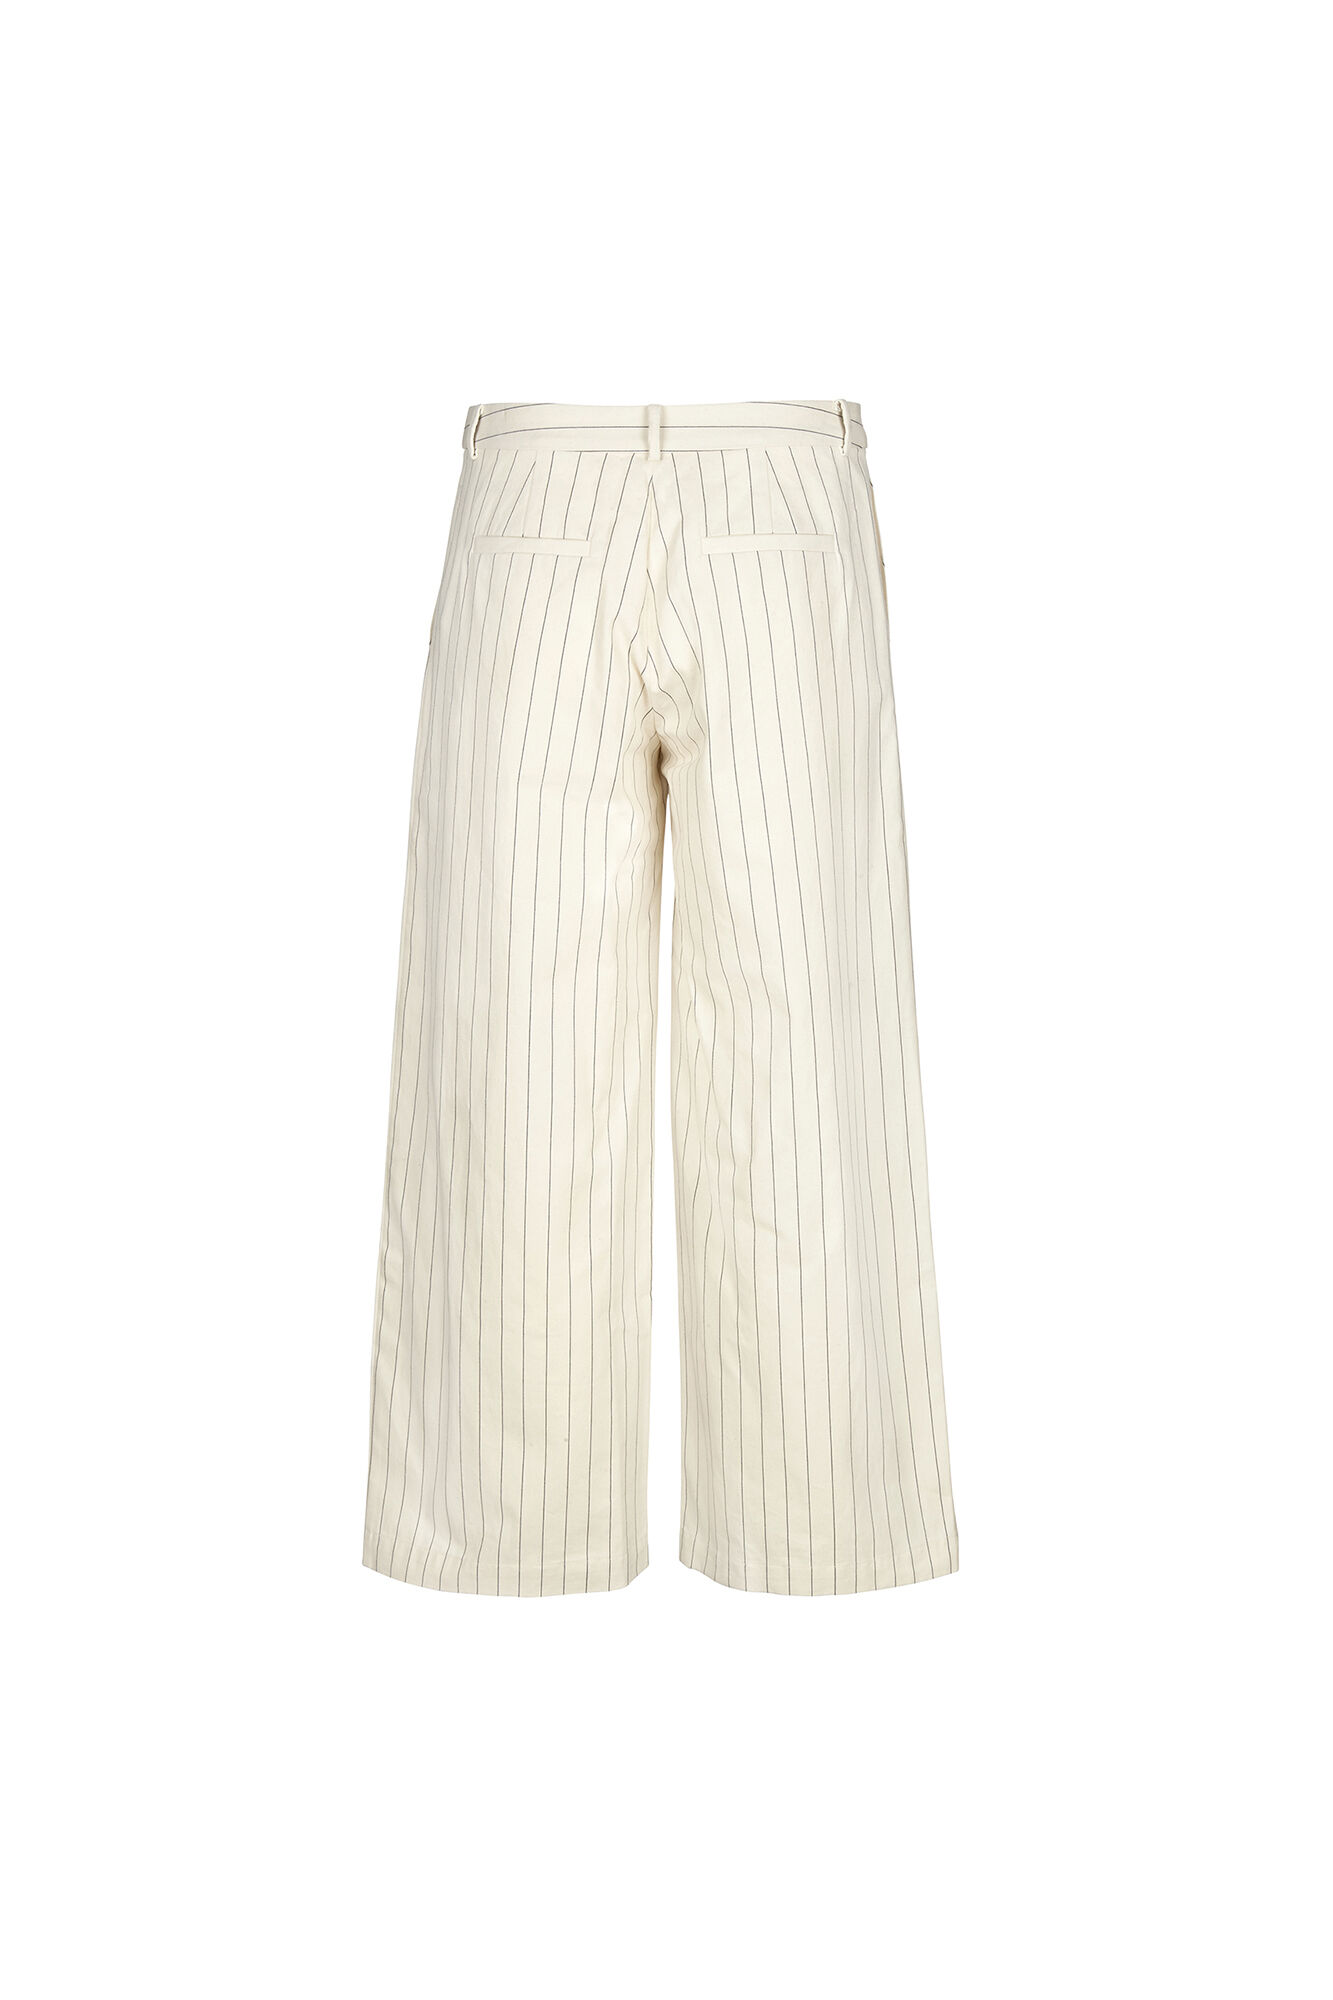 NITRO PANTS 6428, CREAM PINSTRIPE